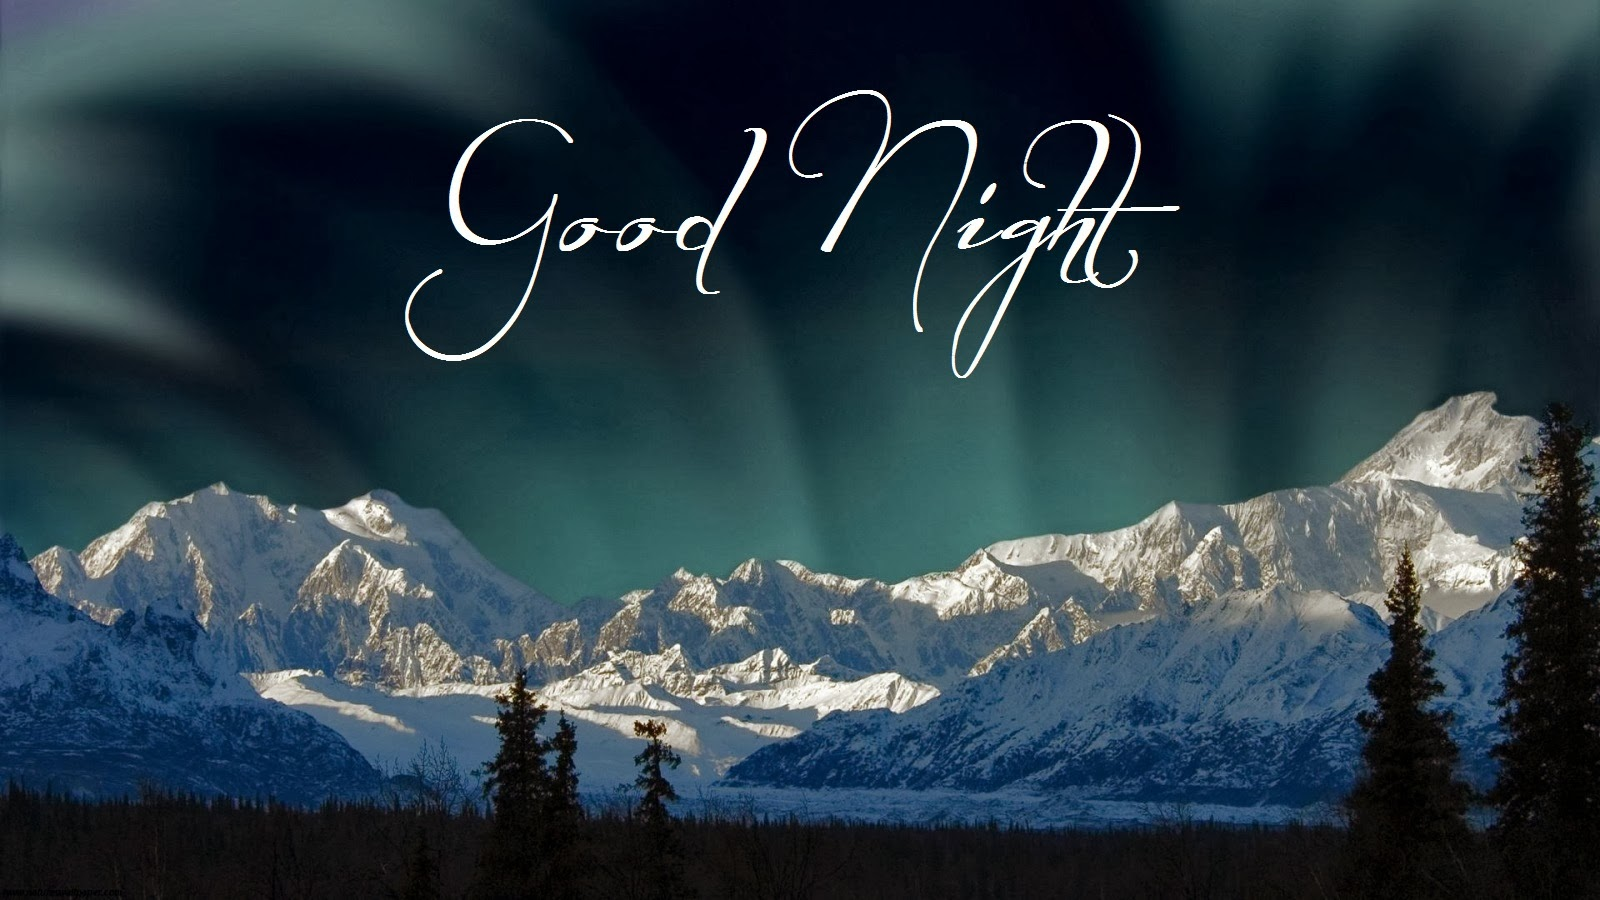 Love Wallpaper Of Good Night : Lovely Good Night wallpapers ~ Allfreshwallpaper